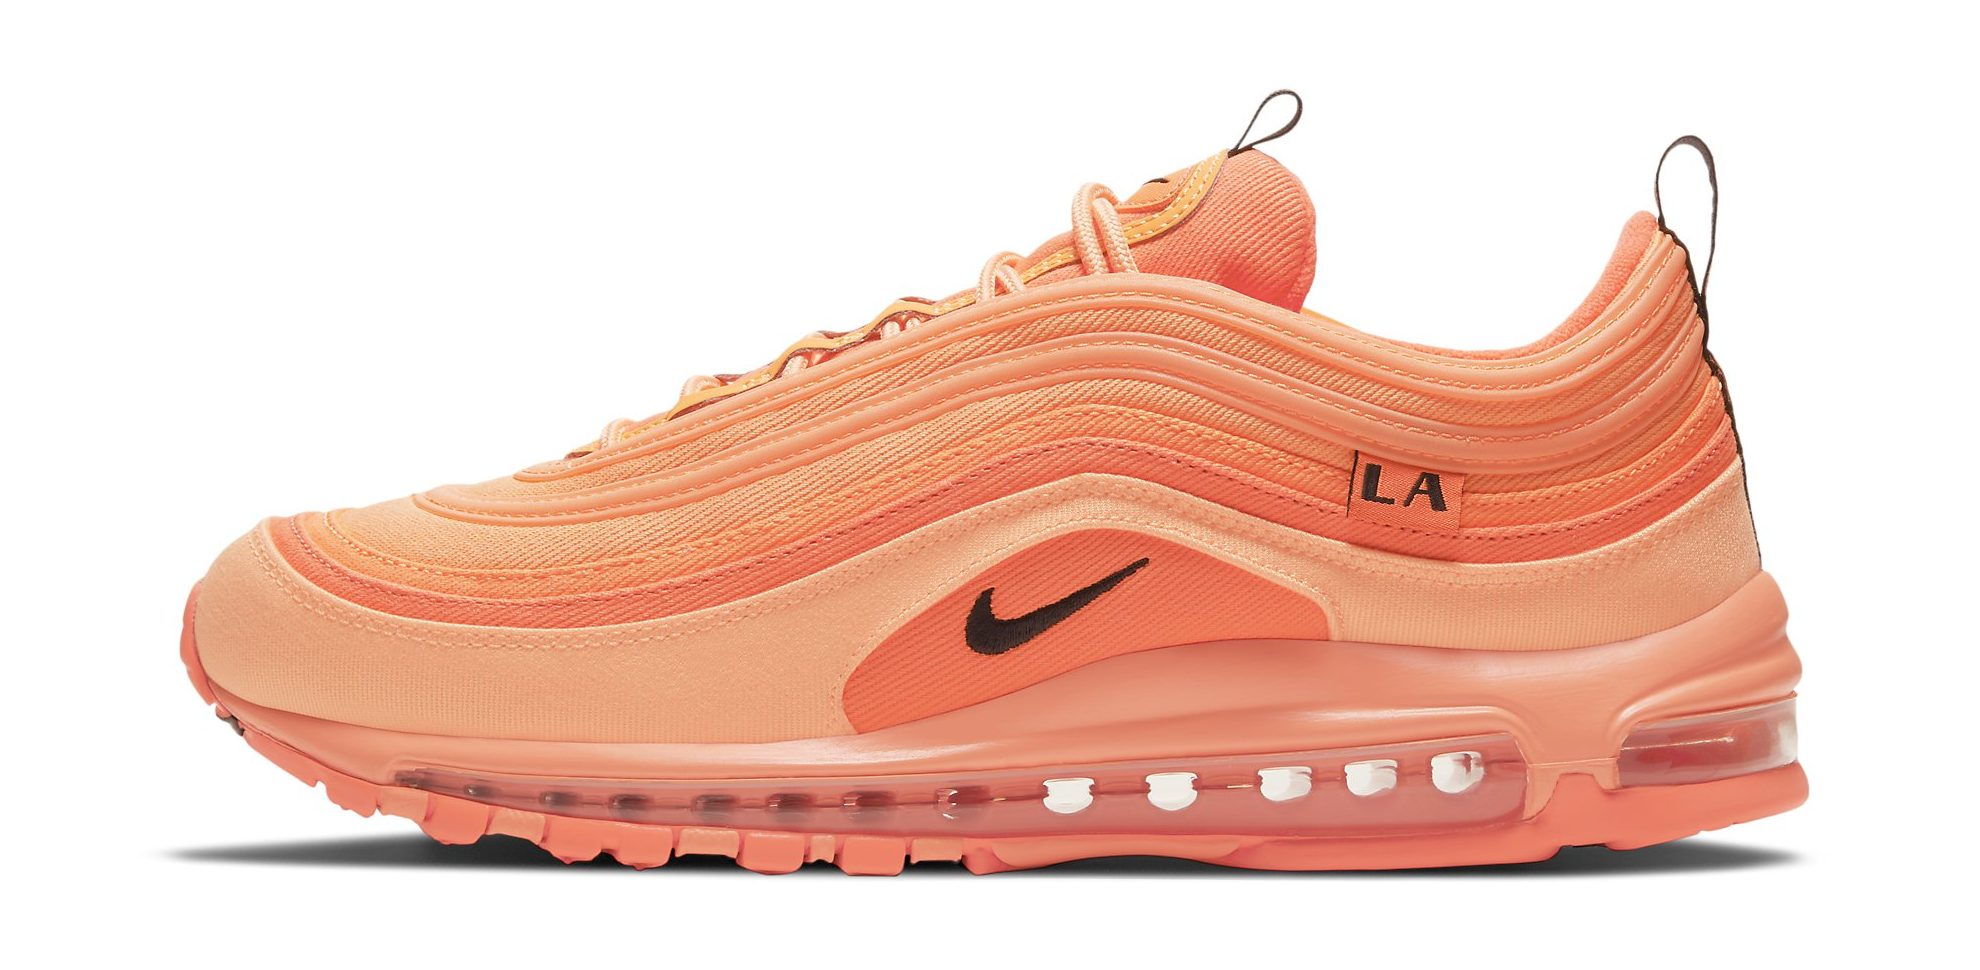 Nike Air Max 97 'City Special' Resale Info: How to Buy a Pair Now ...